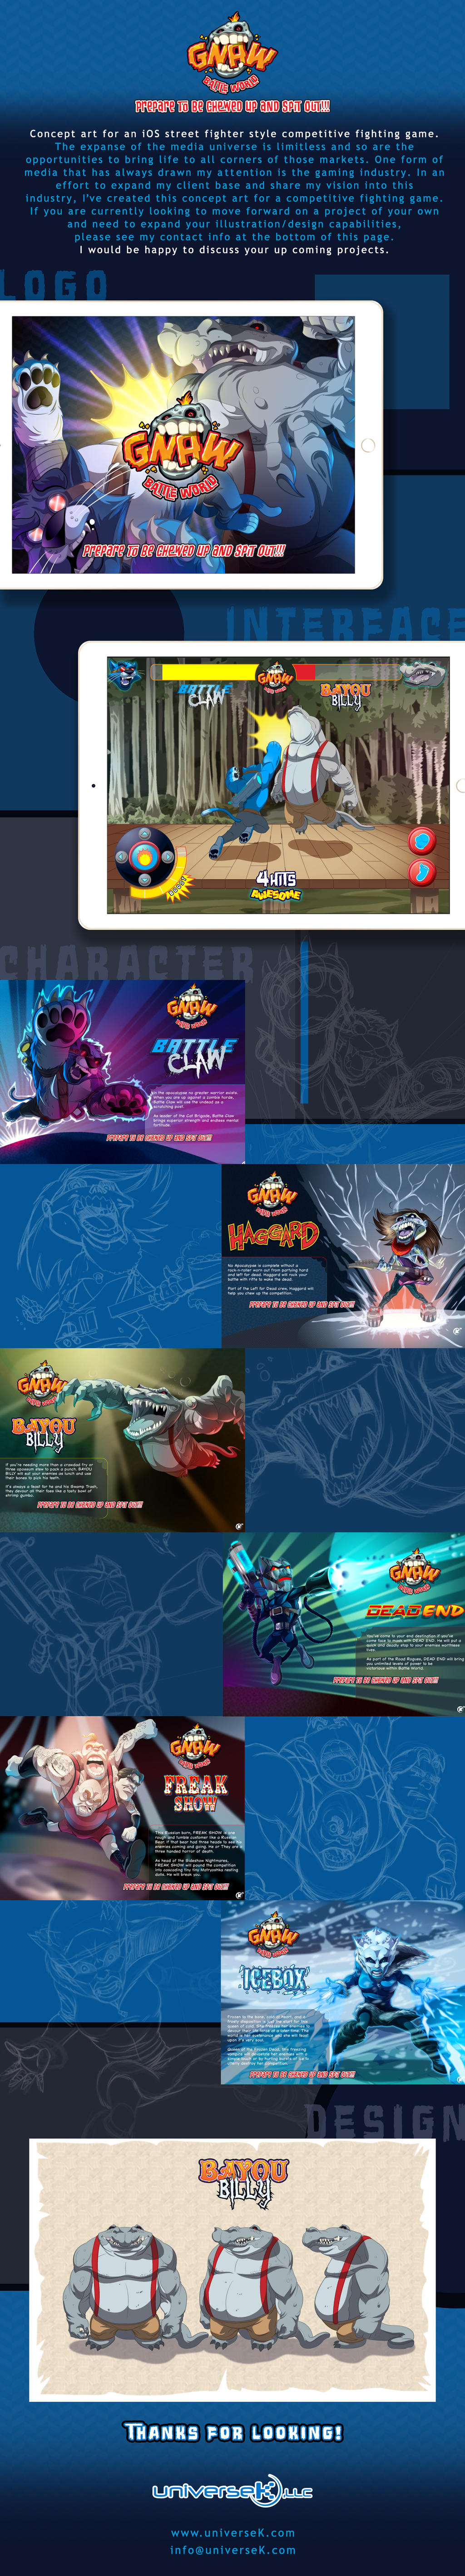 GNAW Battle World Concept art by universe-K